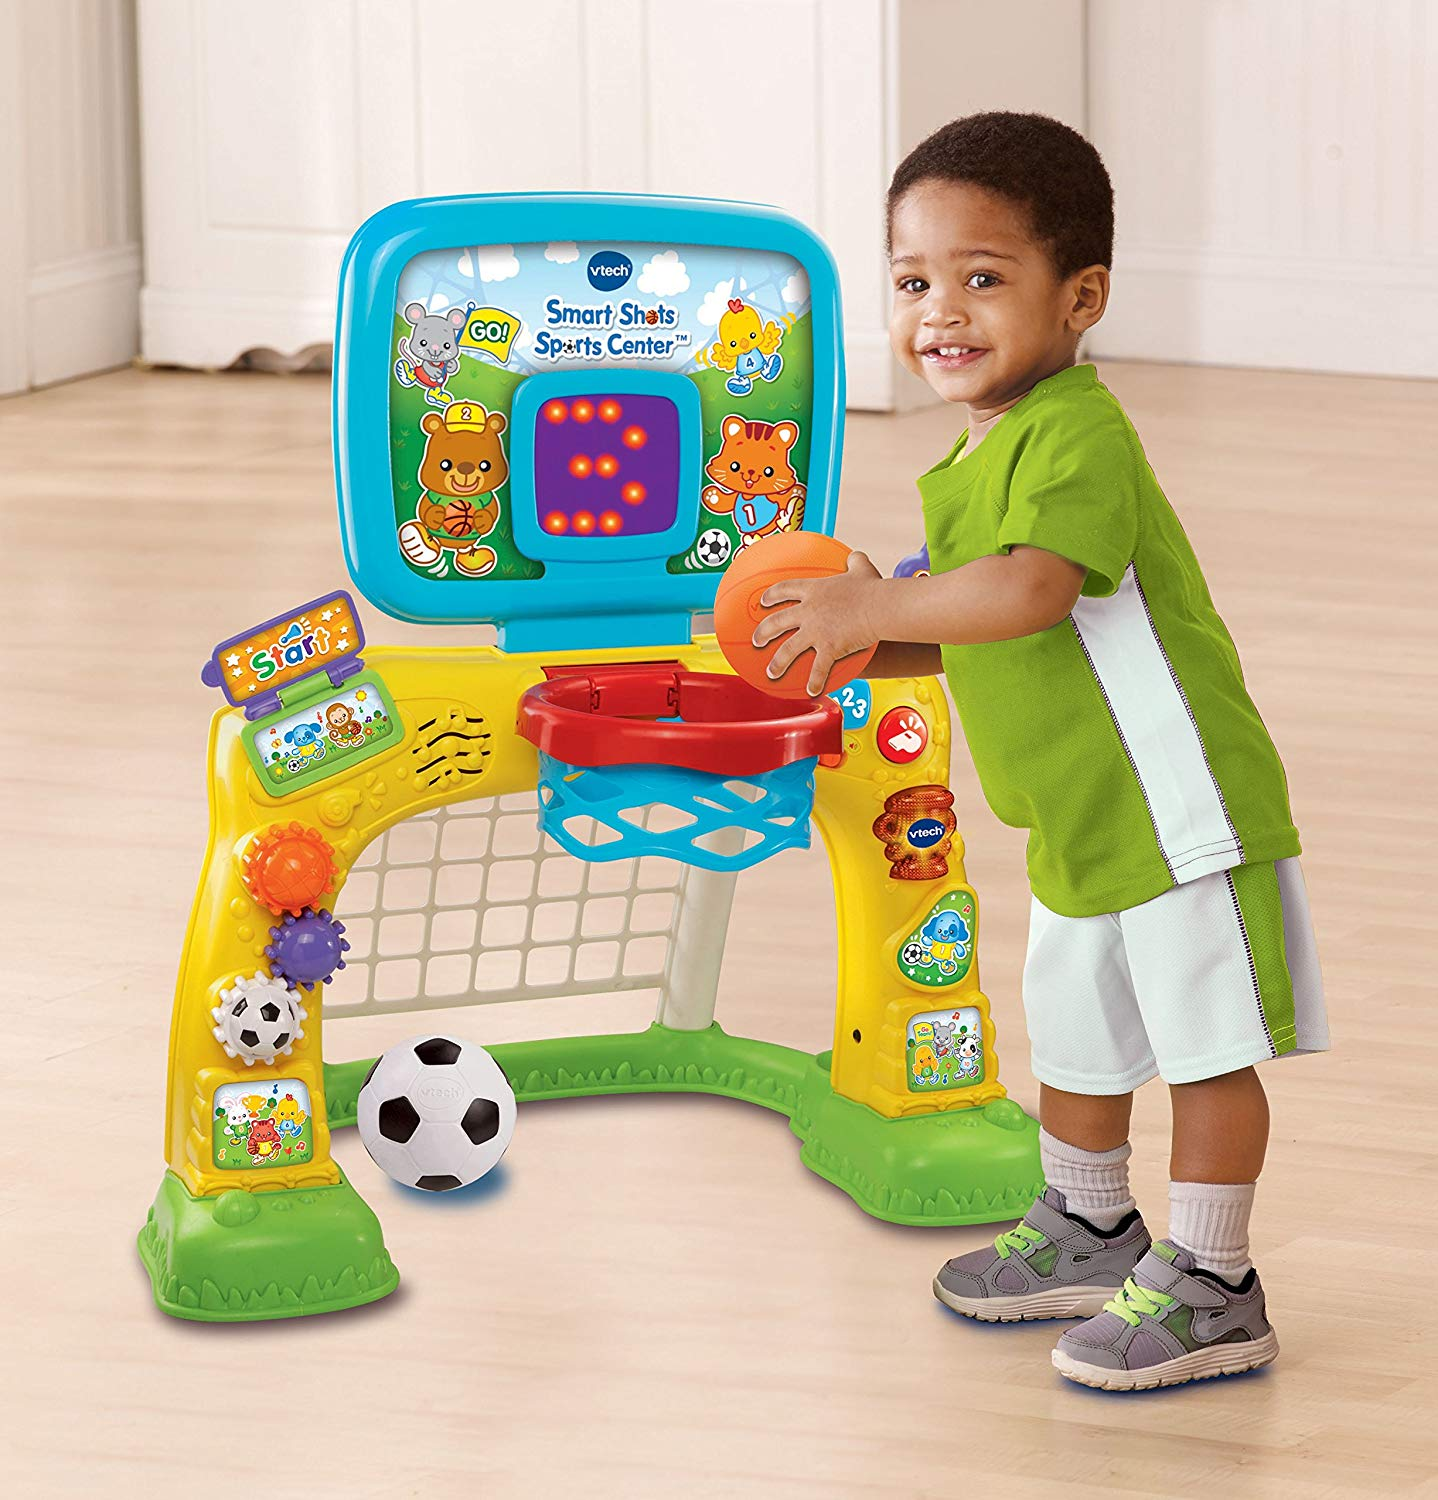 50 Best Toys For 2 Year Olds In 2020 Updated Heavy Com